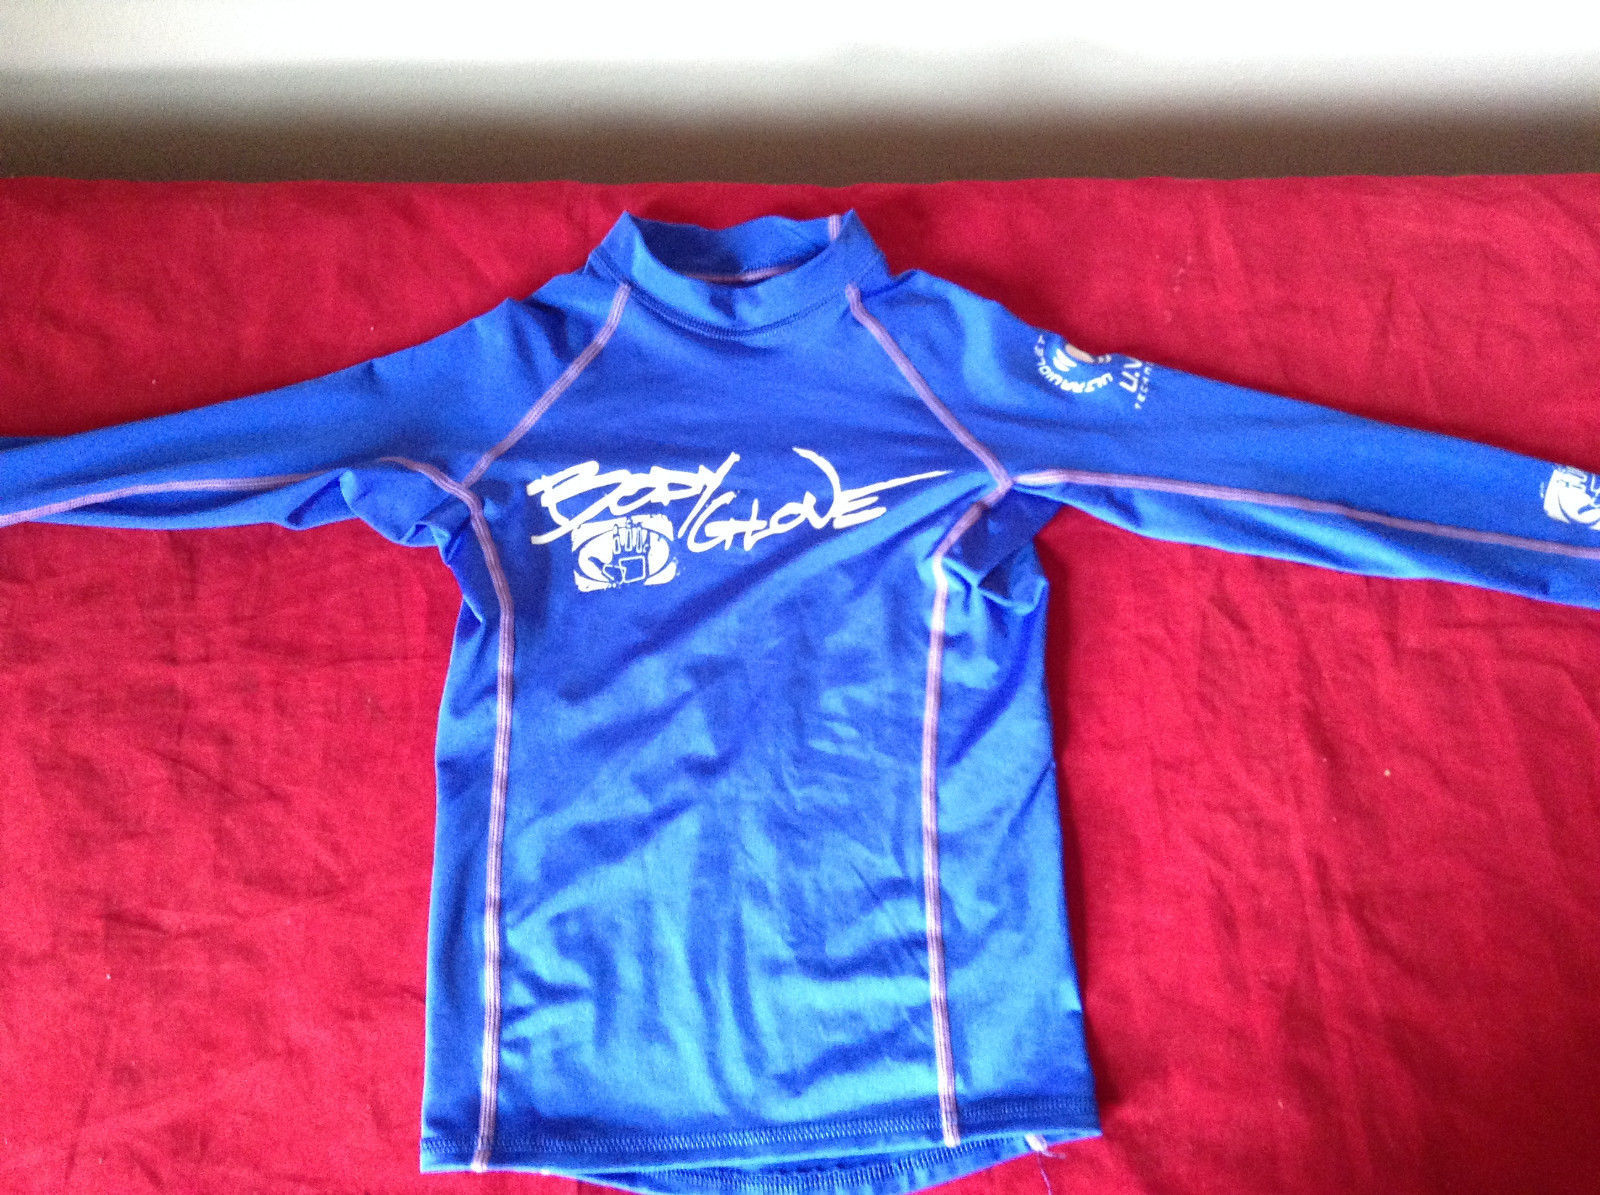 Swimming Long Sleeve Blue Ultraviolet Protection Shirt UVP Technology Body Glove